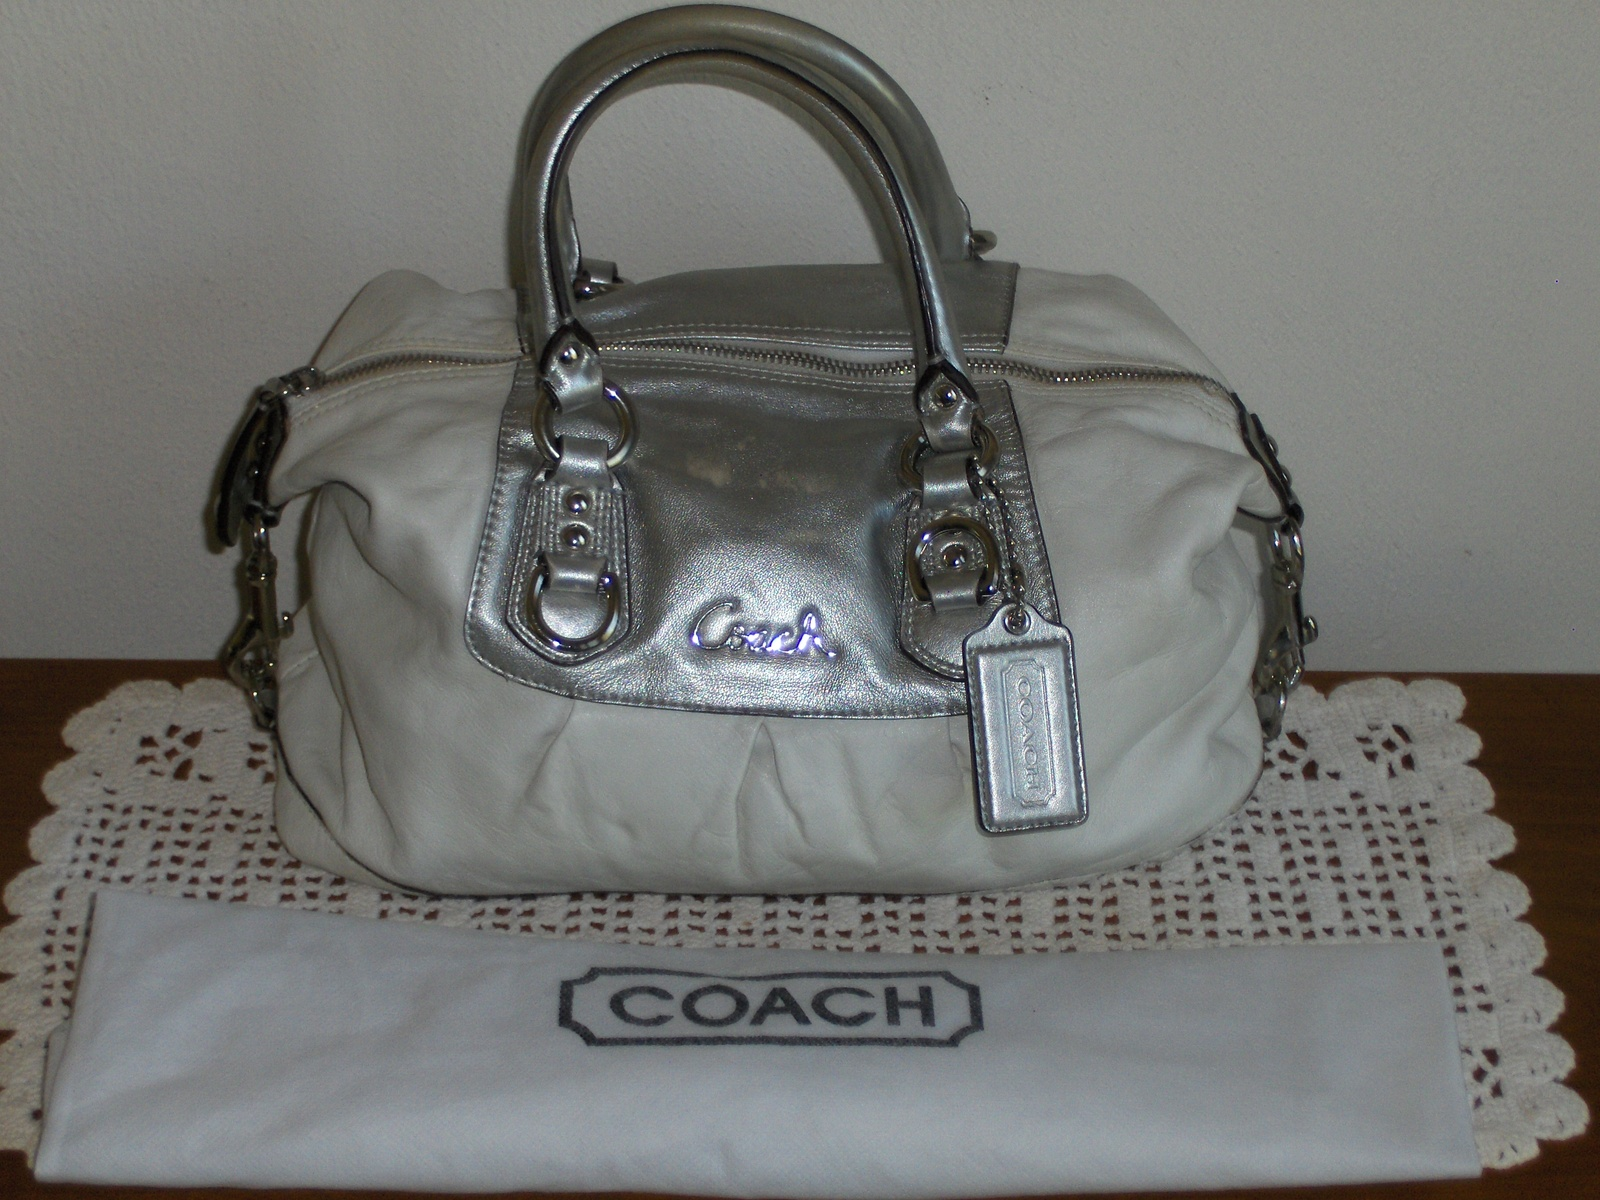 ... ashley satchel white leather silver metallic handbag tote bag purse  f15445 59.99 f4998 dbde4 france nwt coach ashley leather orange convertible  travel ... 220d406ac6